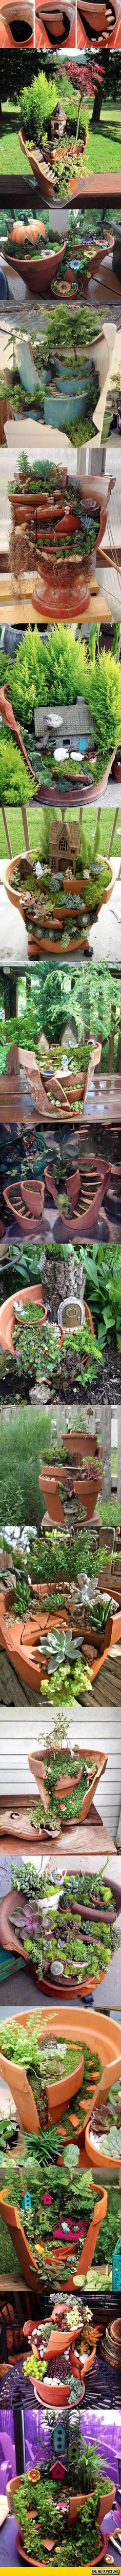 Don't Trash Broken Pottery, Instead Do This With It #jardinesideas